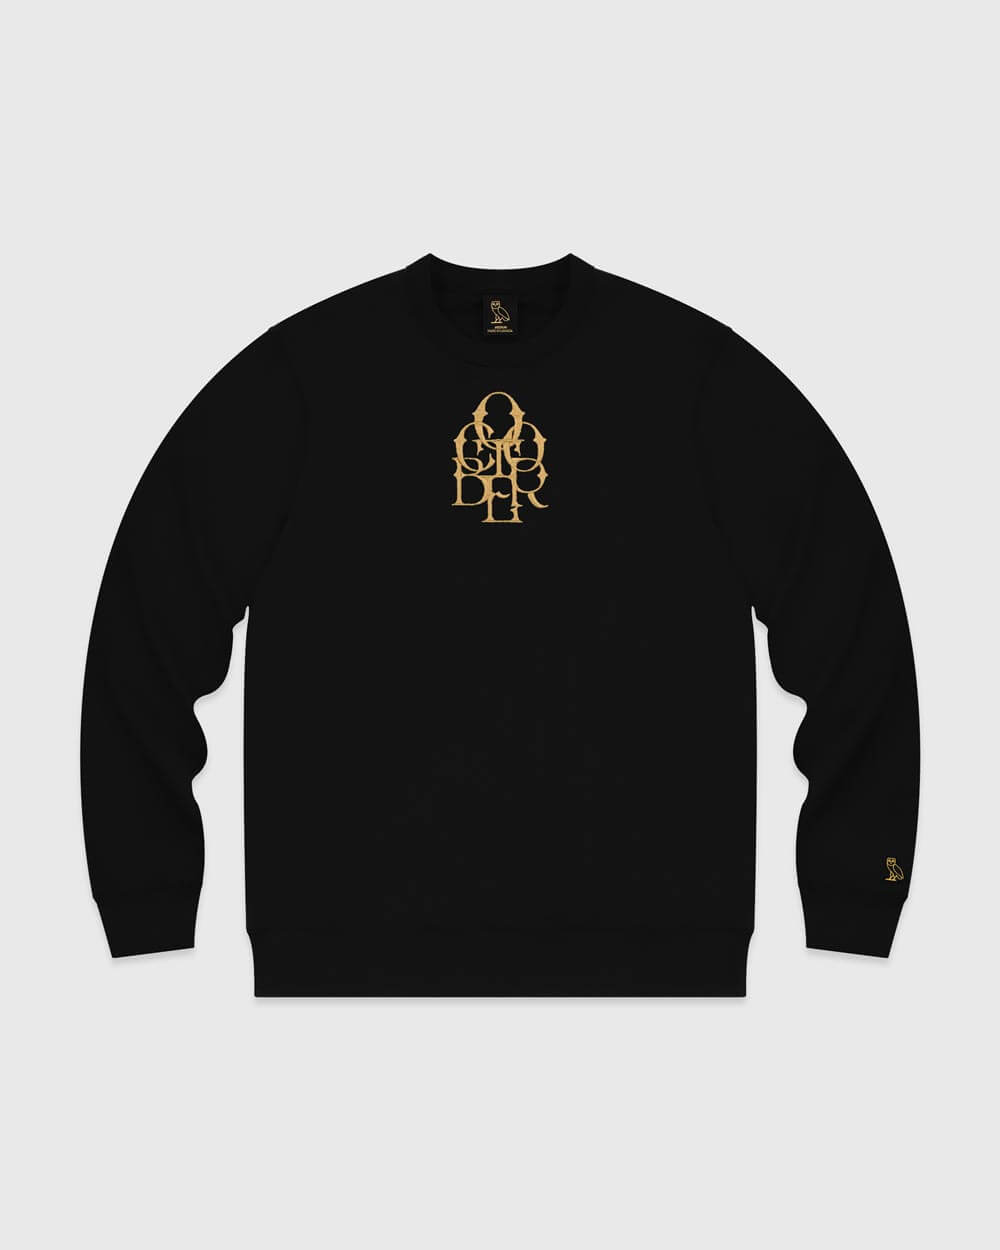 OCTOBER LETTERLOCK CREW - BLACK